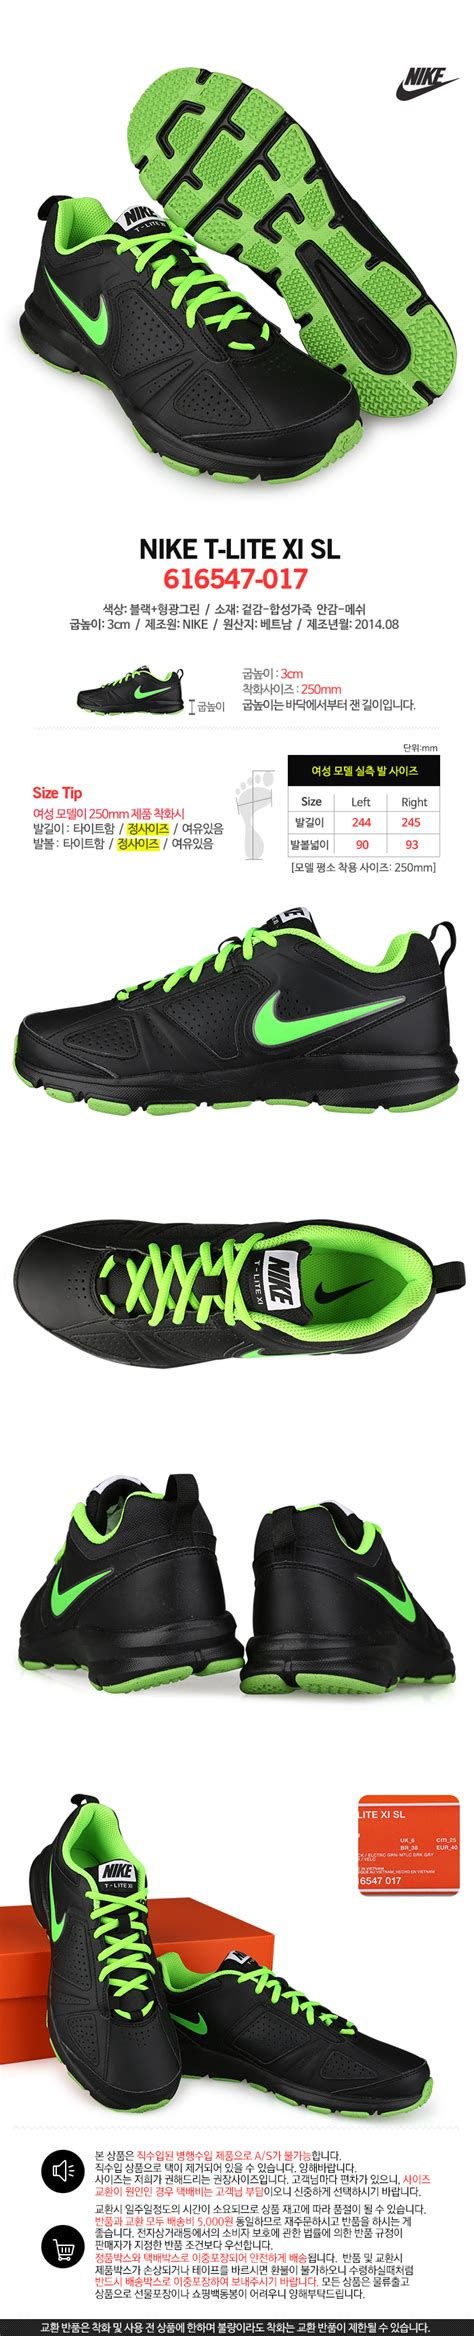 types of nike shoes nike shoes s revolution2 t lite 6 types 11street